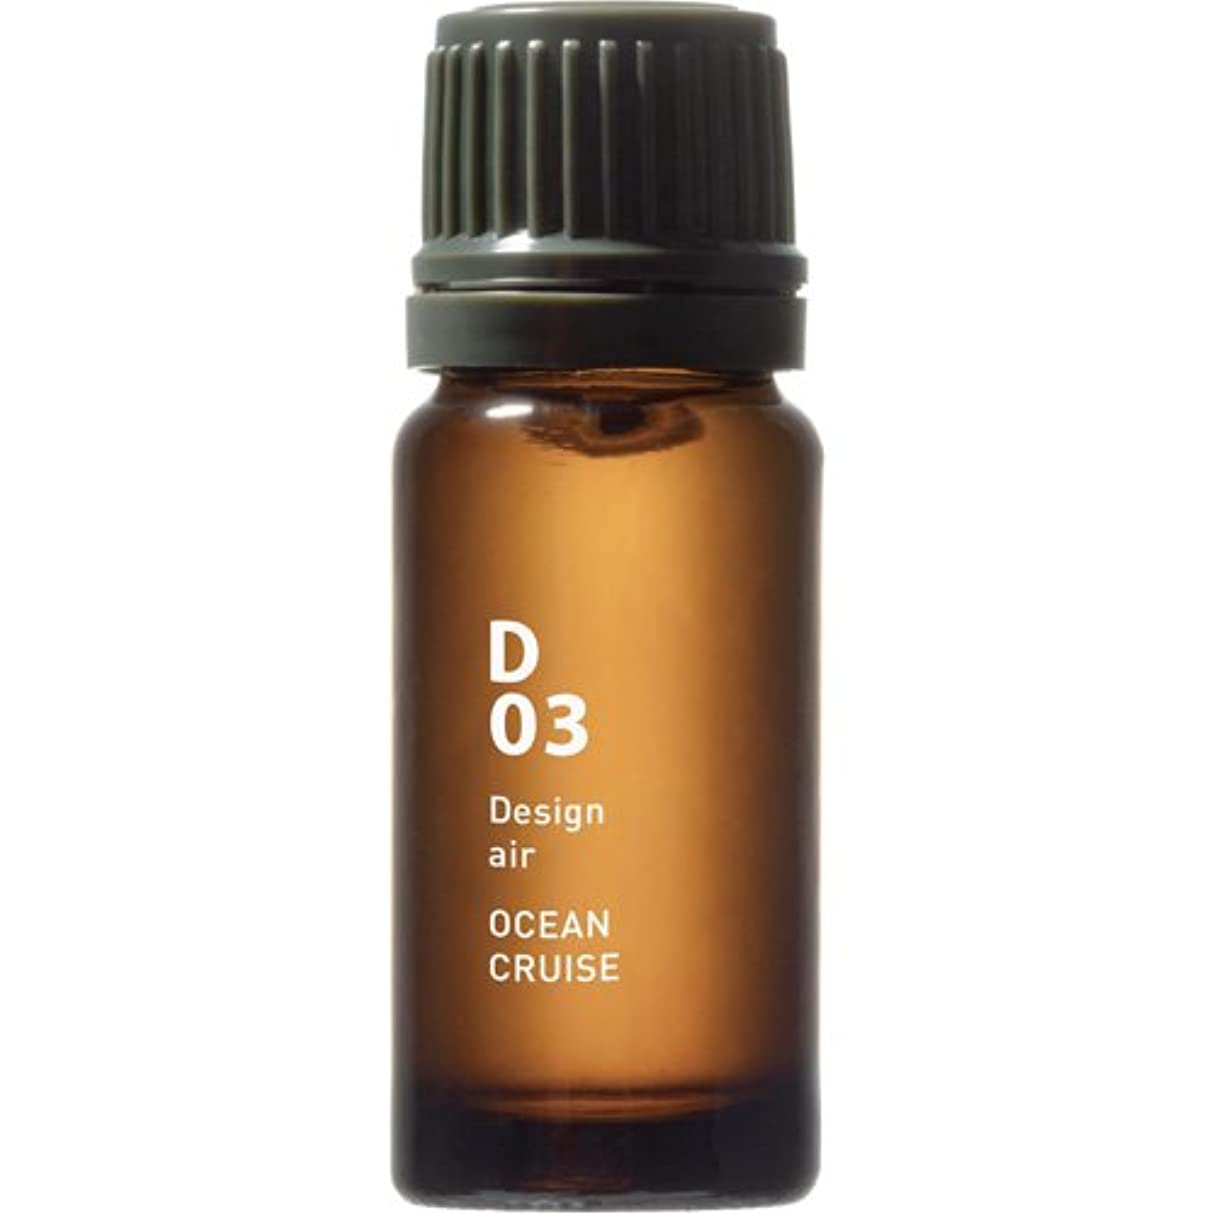 信号タックル荷物D03 OCEAN CRUISE Design air 10ml